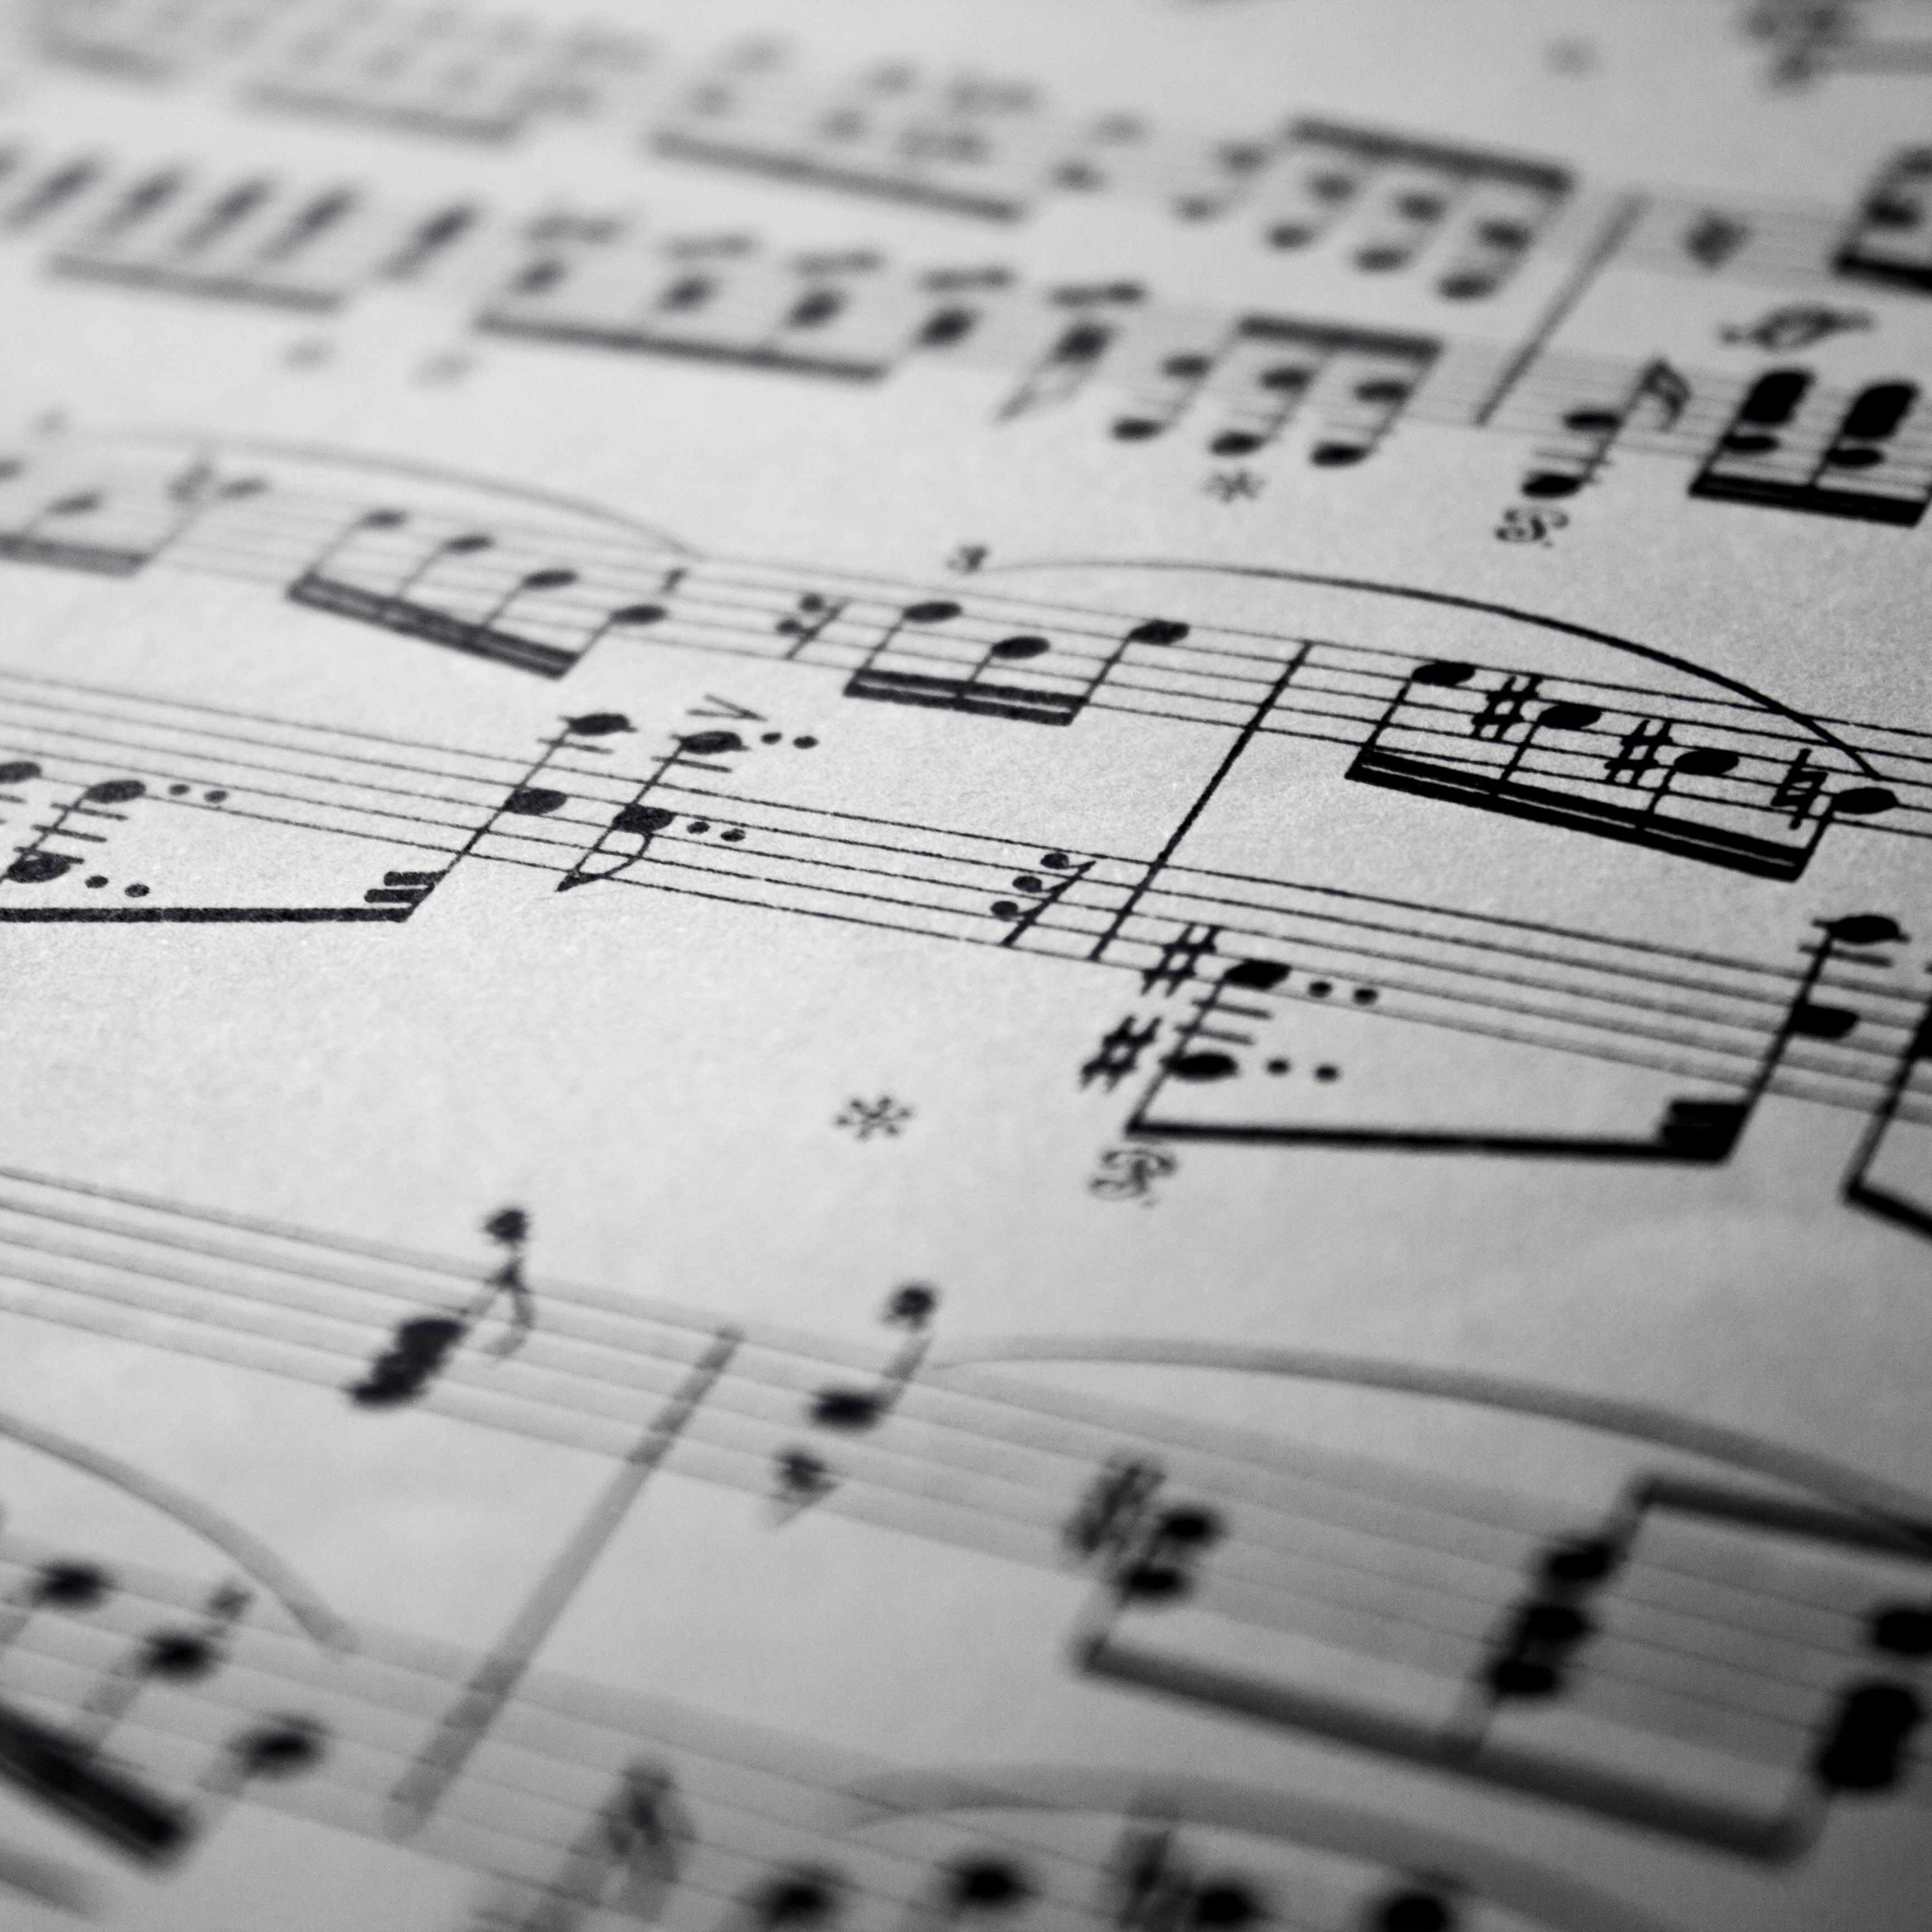 a close-up of musical notes on a sheet of music